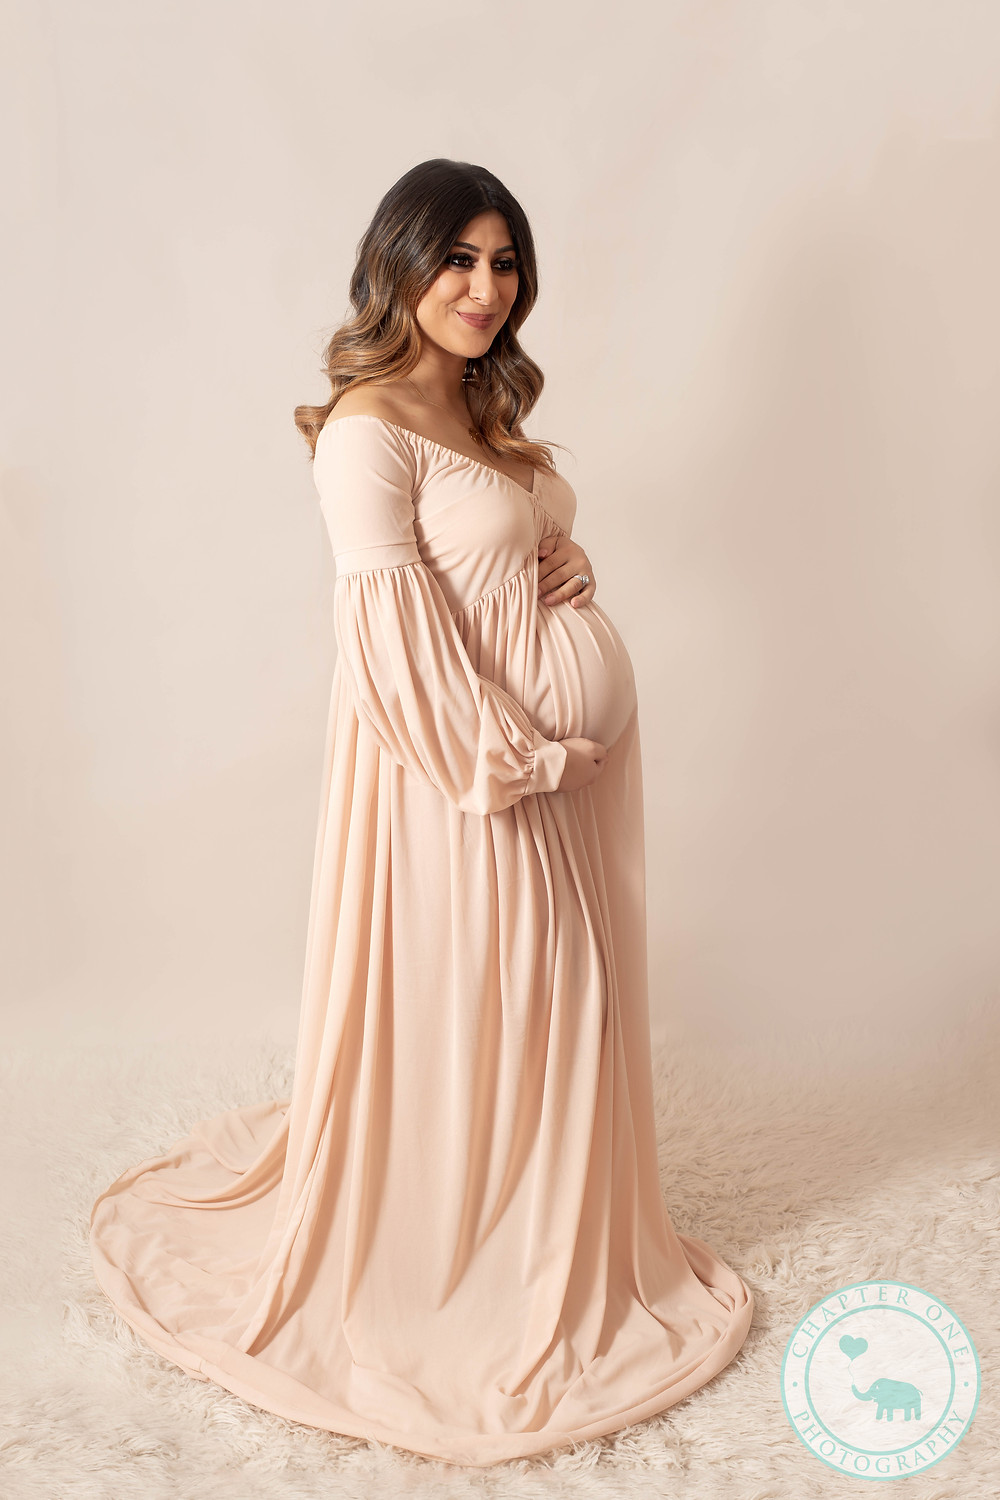 36 weeks pregnant maternity studio shoot in champagne dress